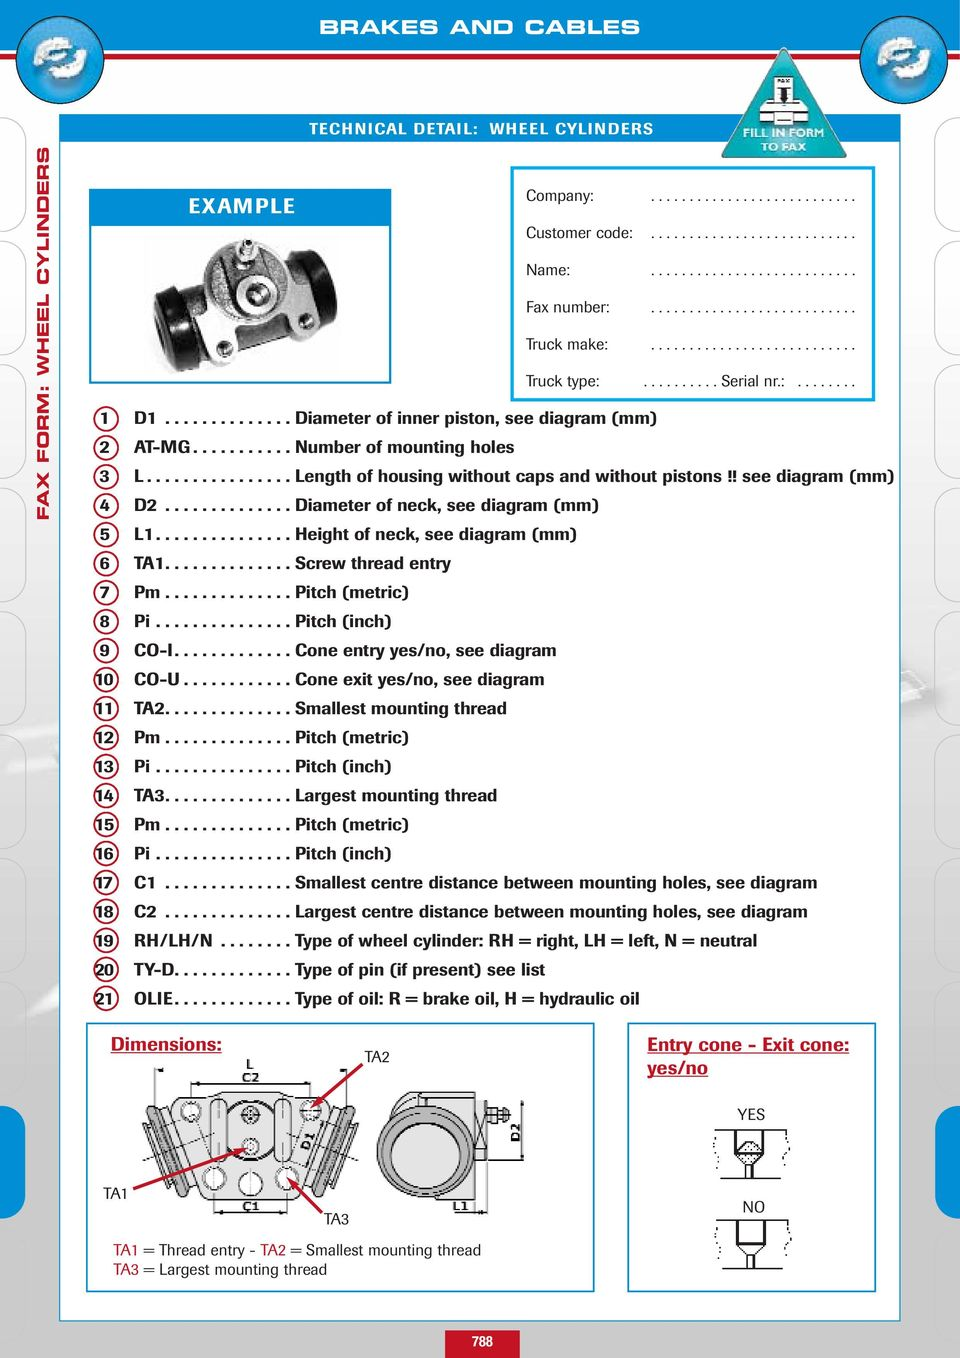 Brakes And Cables All Brake Parts From The Pedal To Drum Hyster Forklift Wiring Diagram E60 Number Of Mounting Holes 3 L